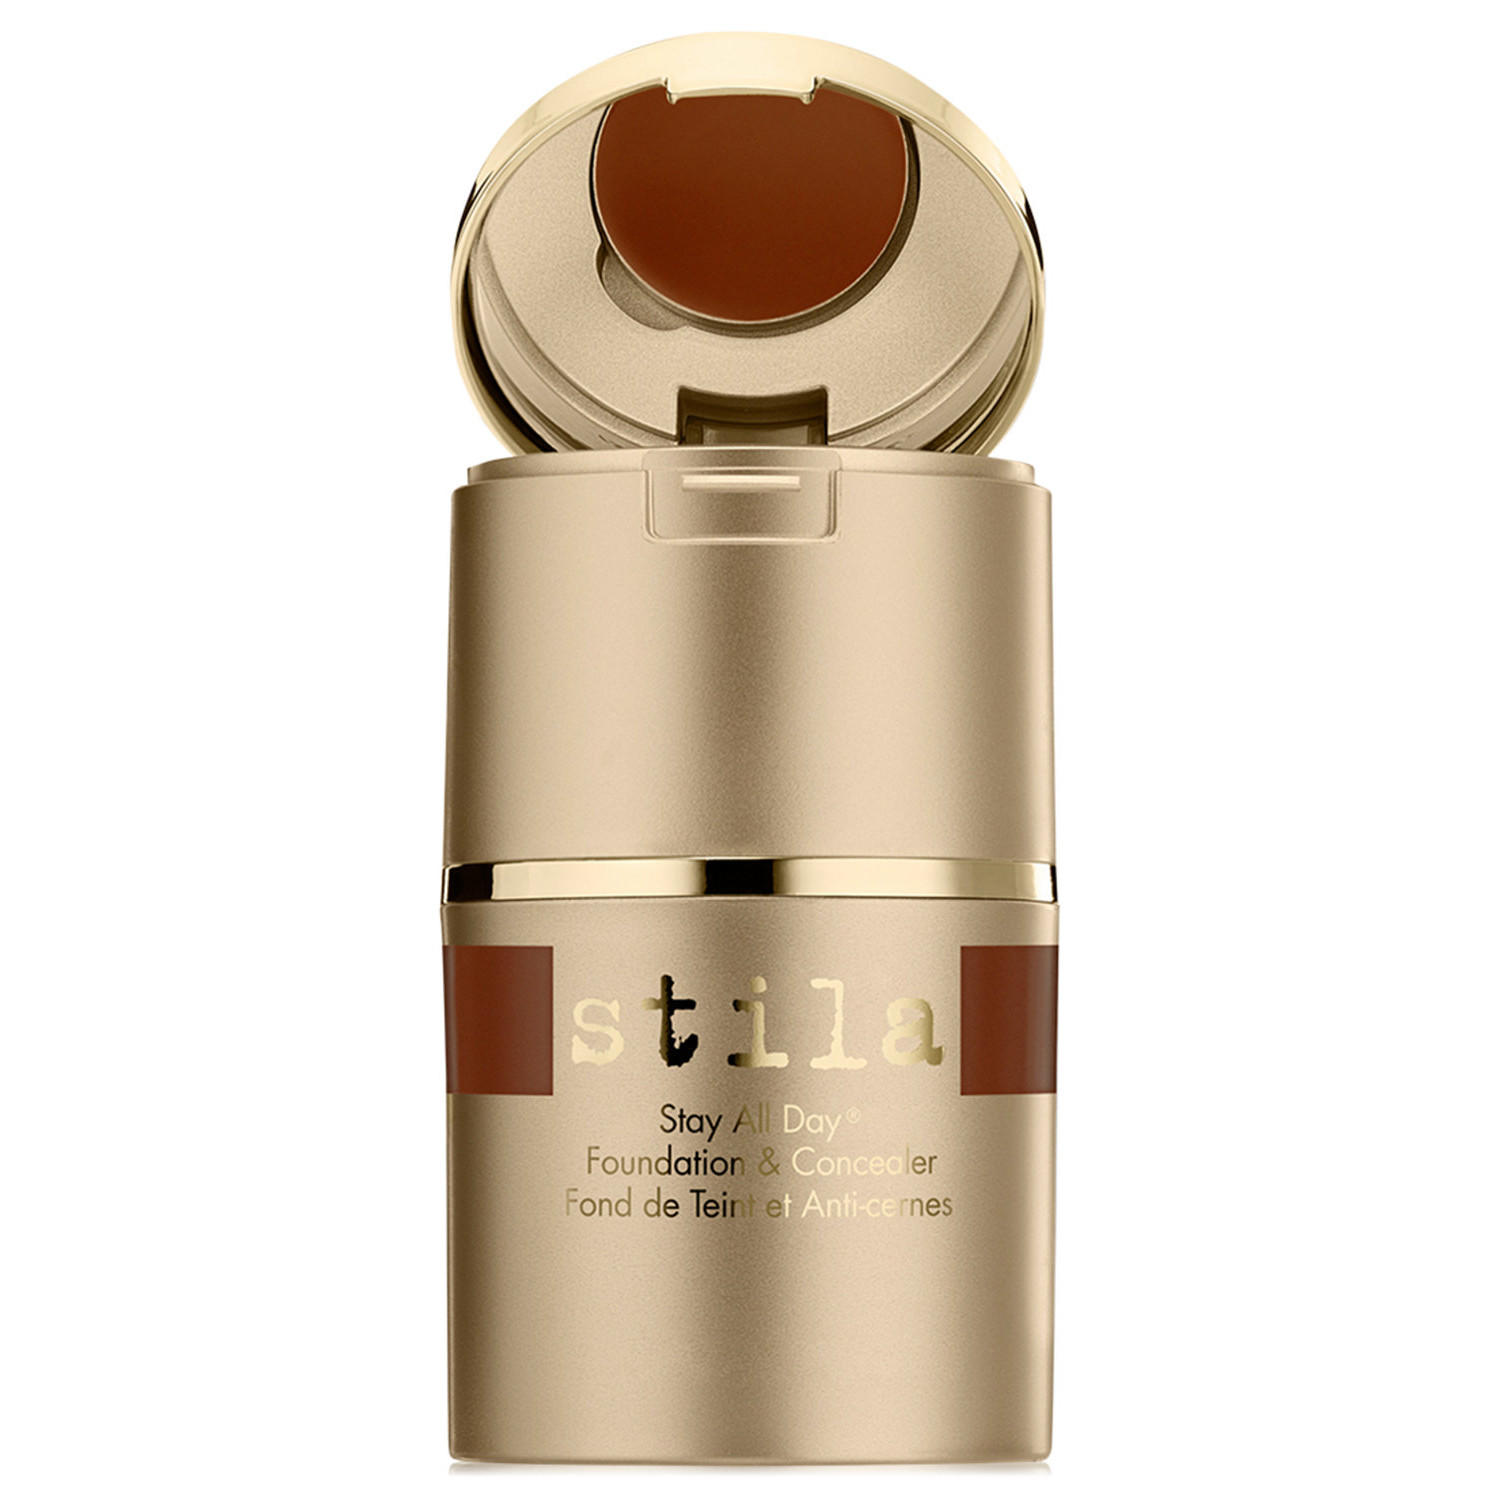 Stila Stay All Day Liquid Foundation & Concealer Espresso 15